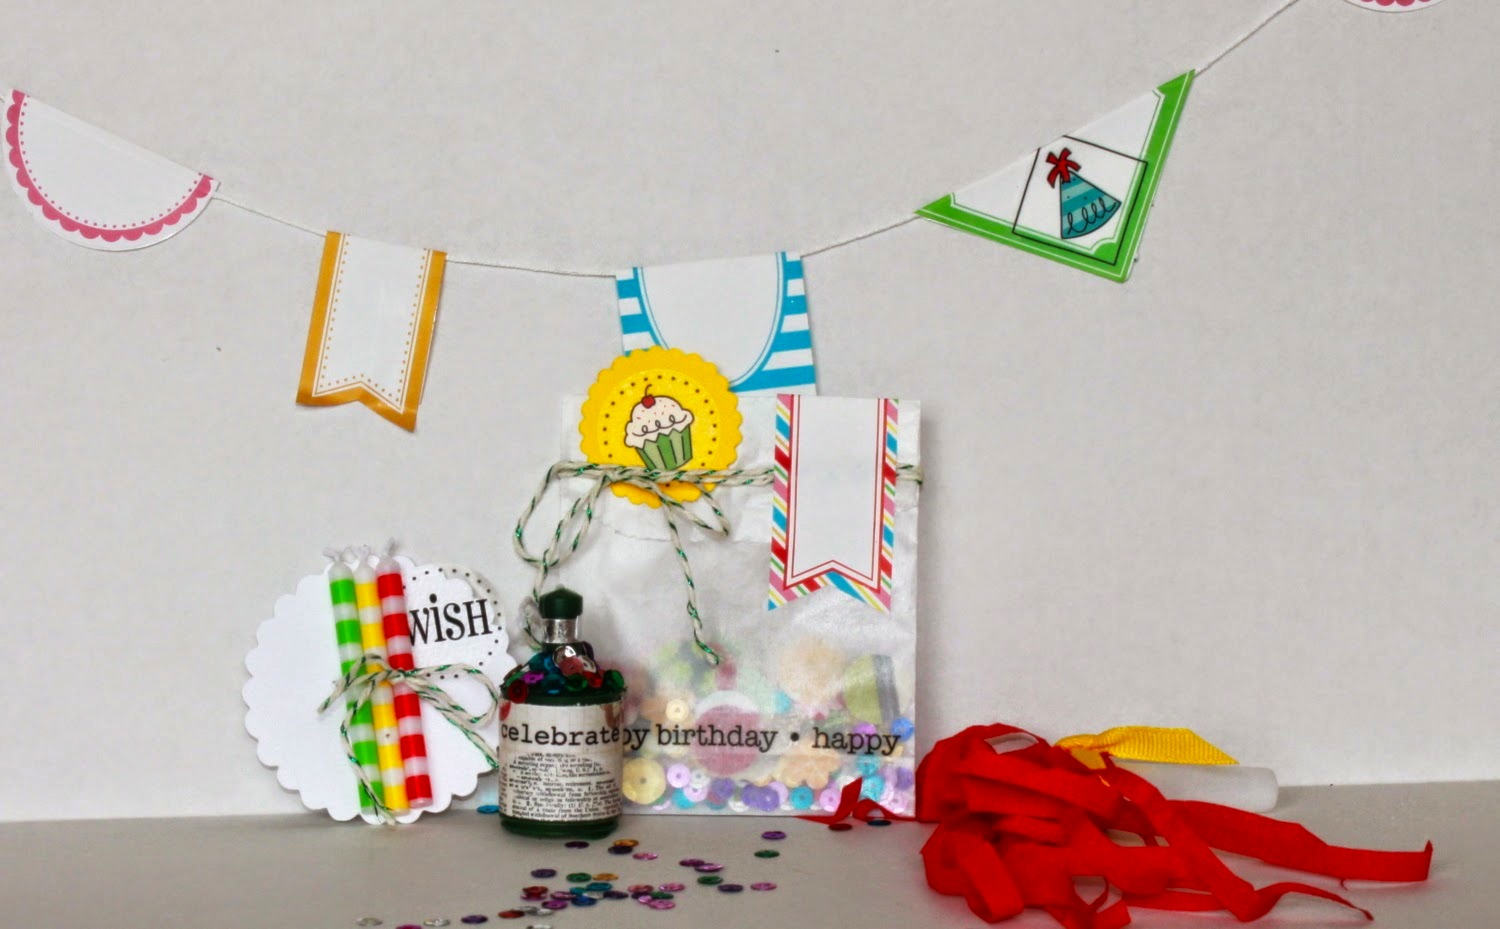 SRM Stickers Blog - Bitty Birthday Box by Shantaie - #birthday #gift #container #clear #A-2 #doily #stickers #twine #shimmer